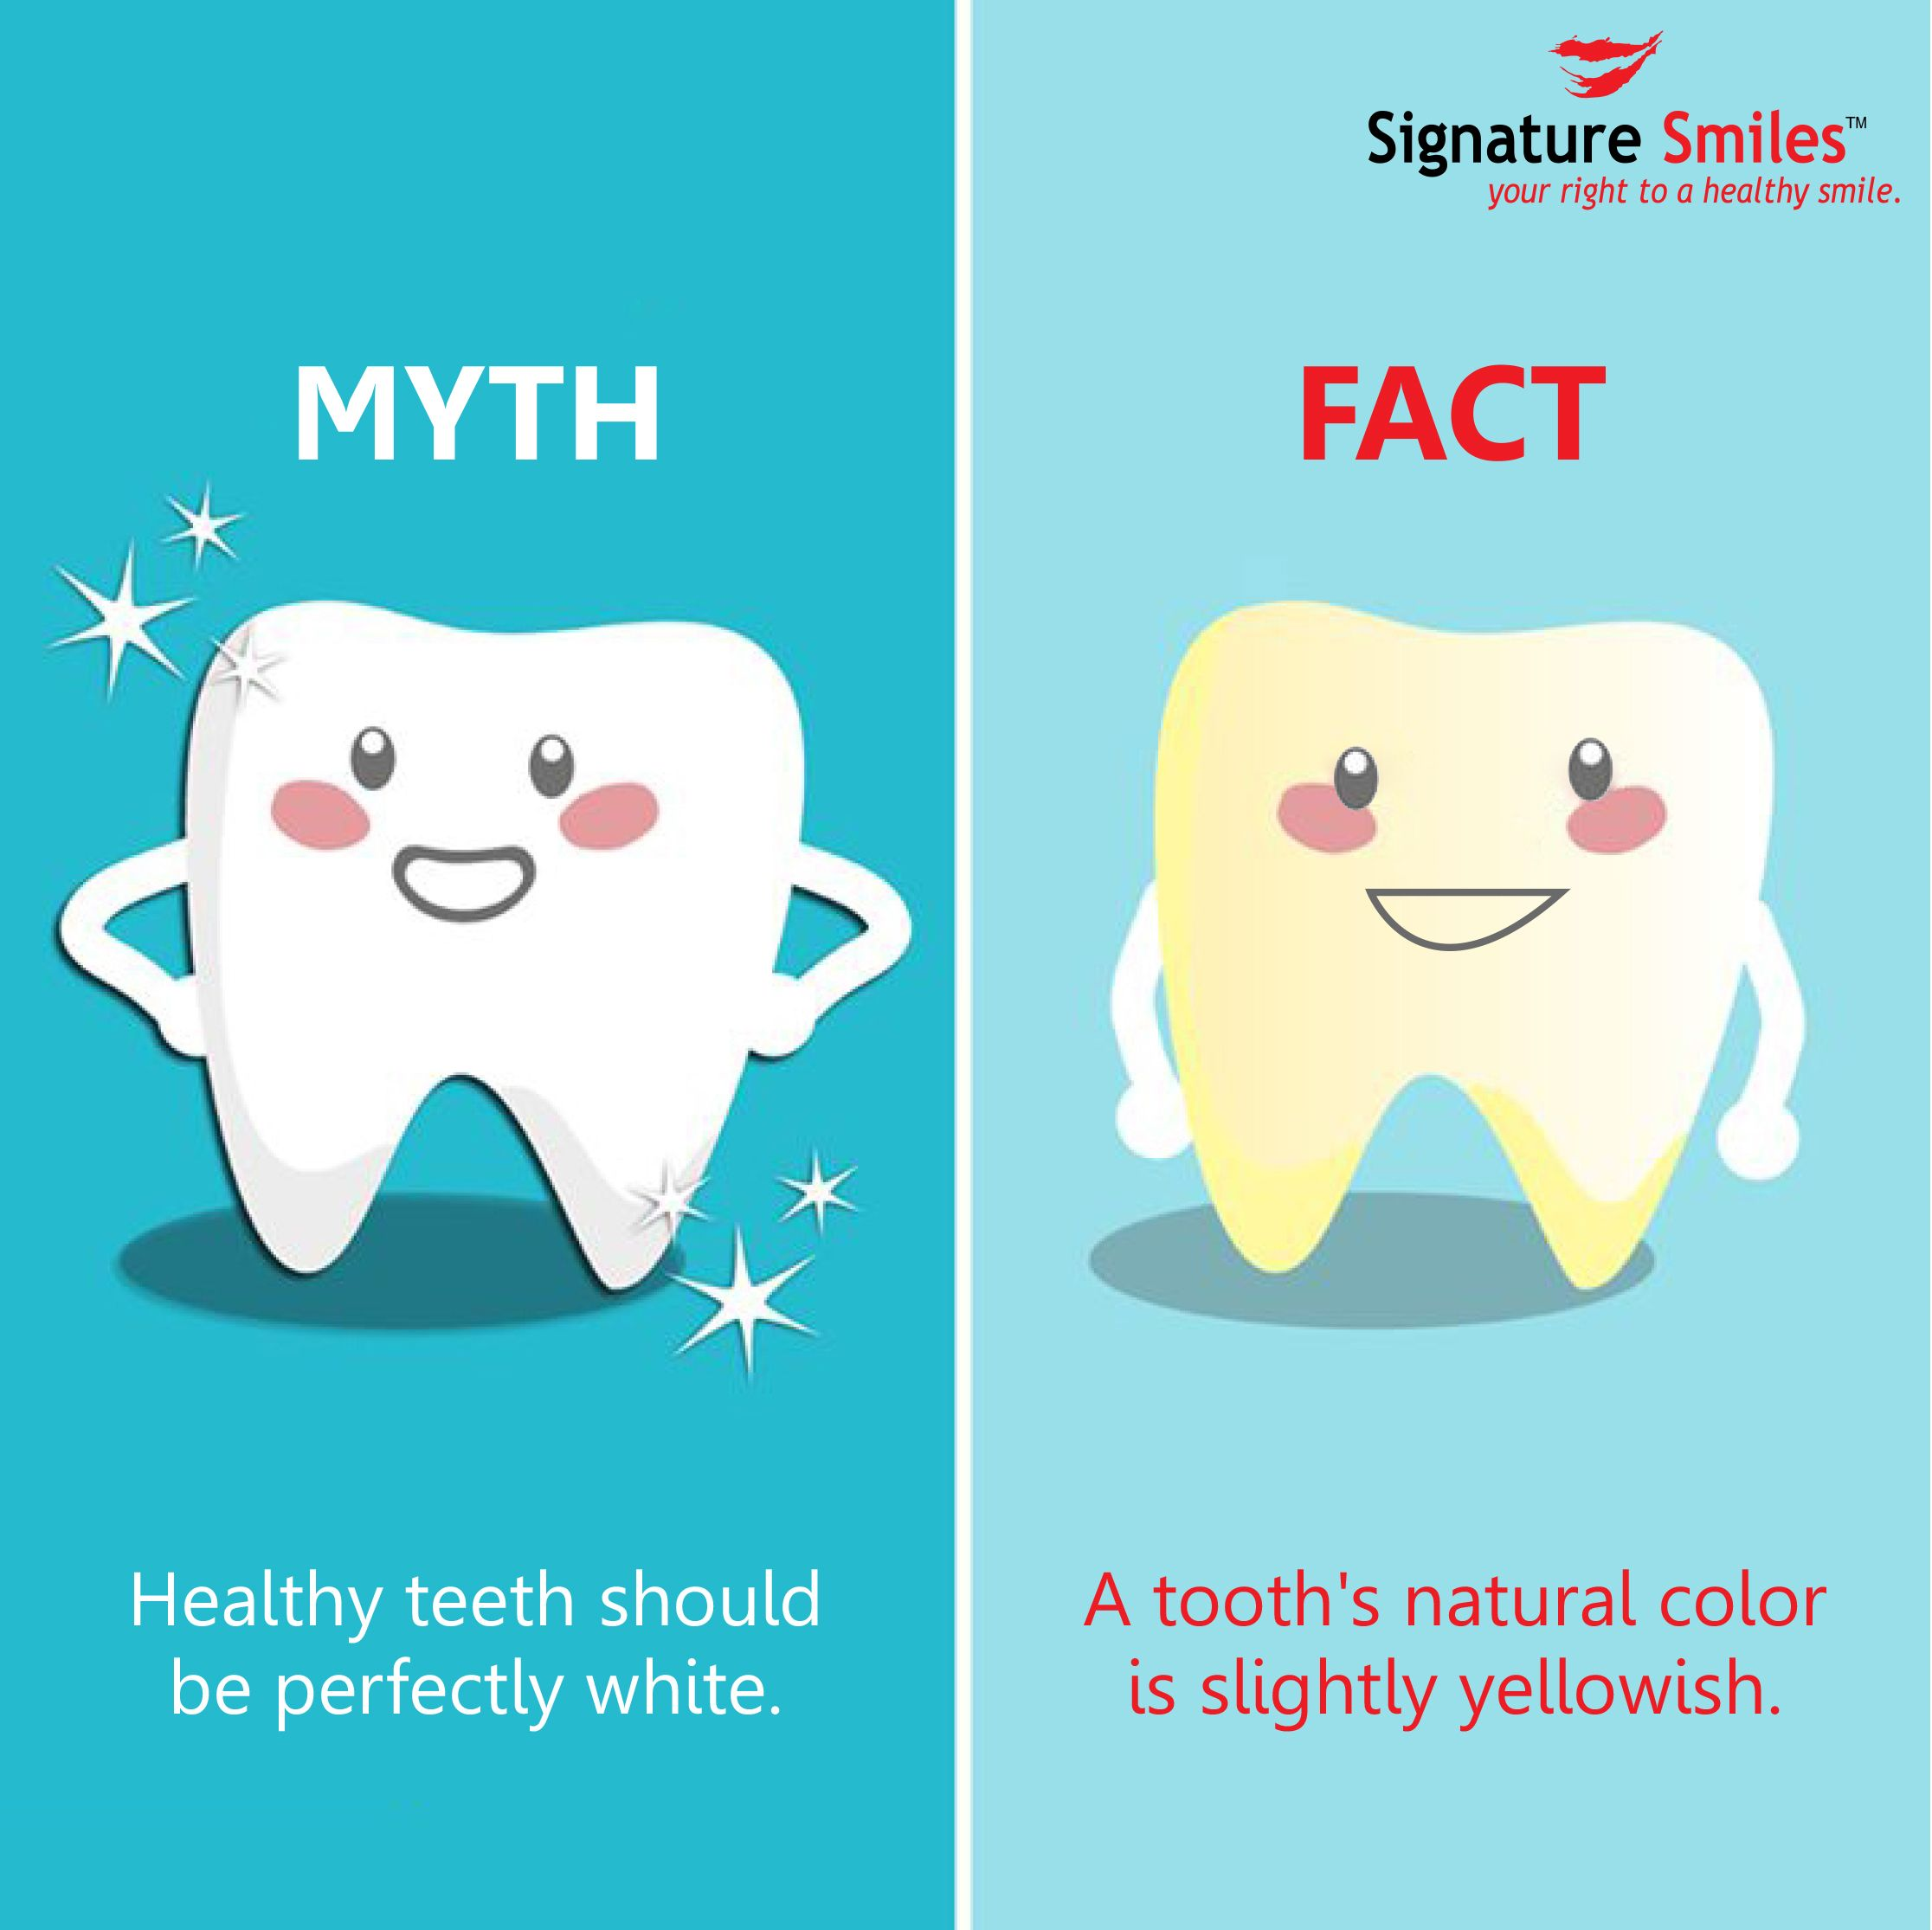 Yellow teeth healthy! Hard to believe? The enamel on ur teeth is naturally a blueish white color & the dentine beneath it is naturally yellow. Since the enamel is translucent, the yellow shows thru the blueish white. #Dental #Facts #dentistry #SignatureSmilesIndia #FridayFacts